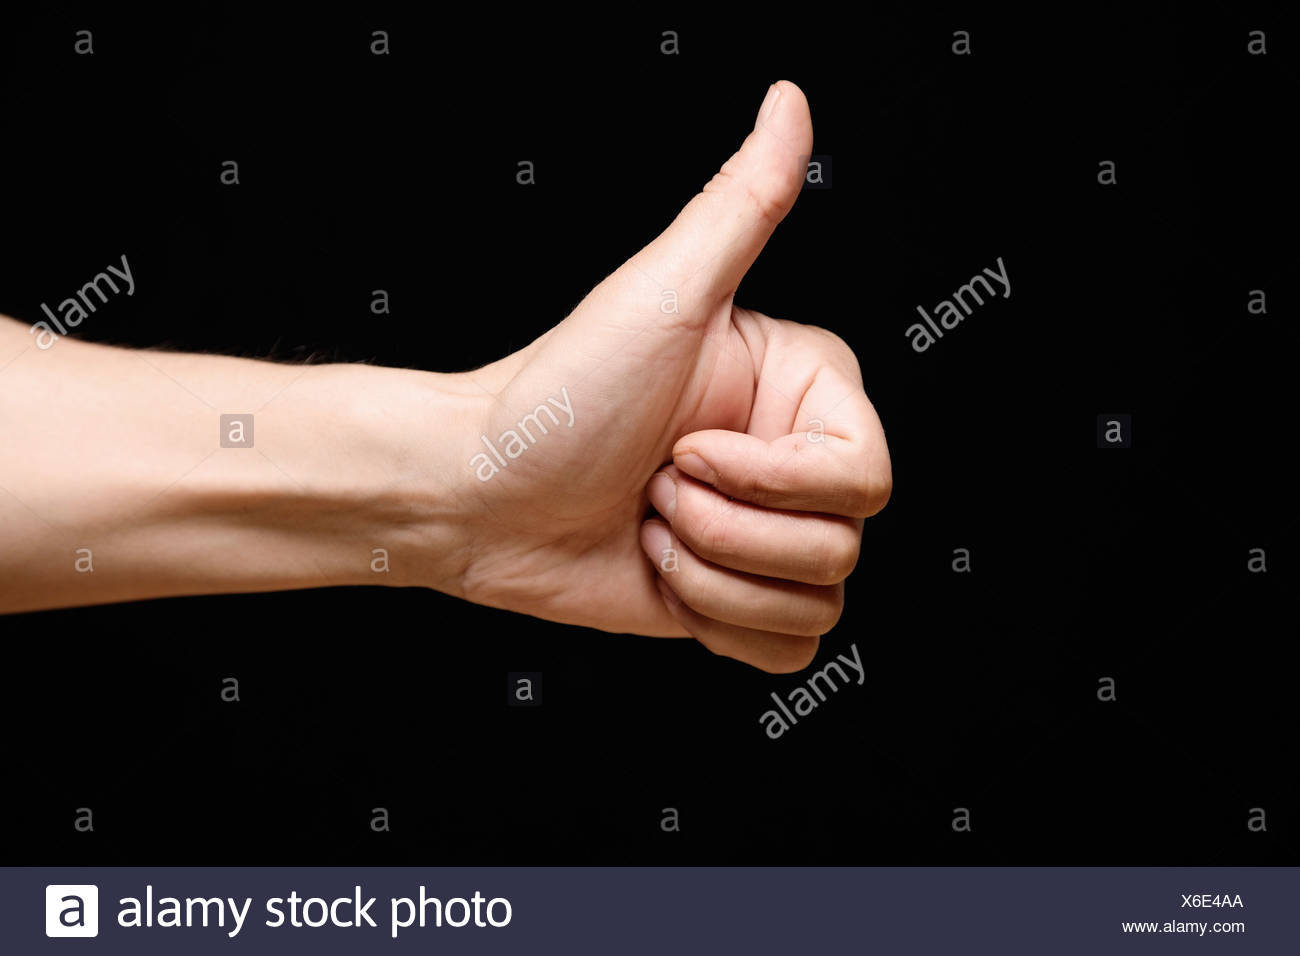 Thumbs-up - Stock Image